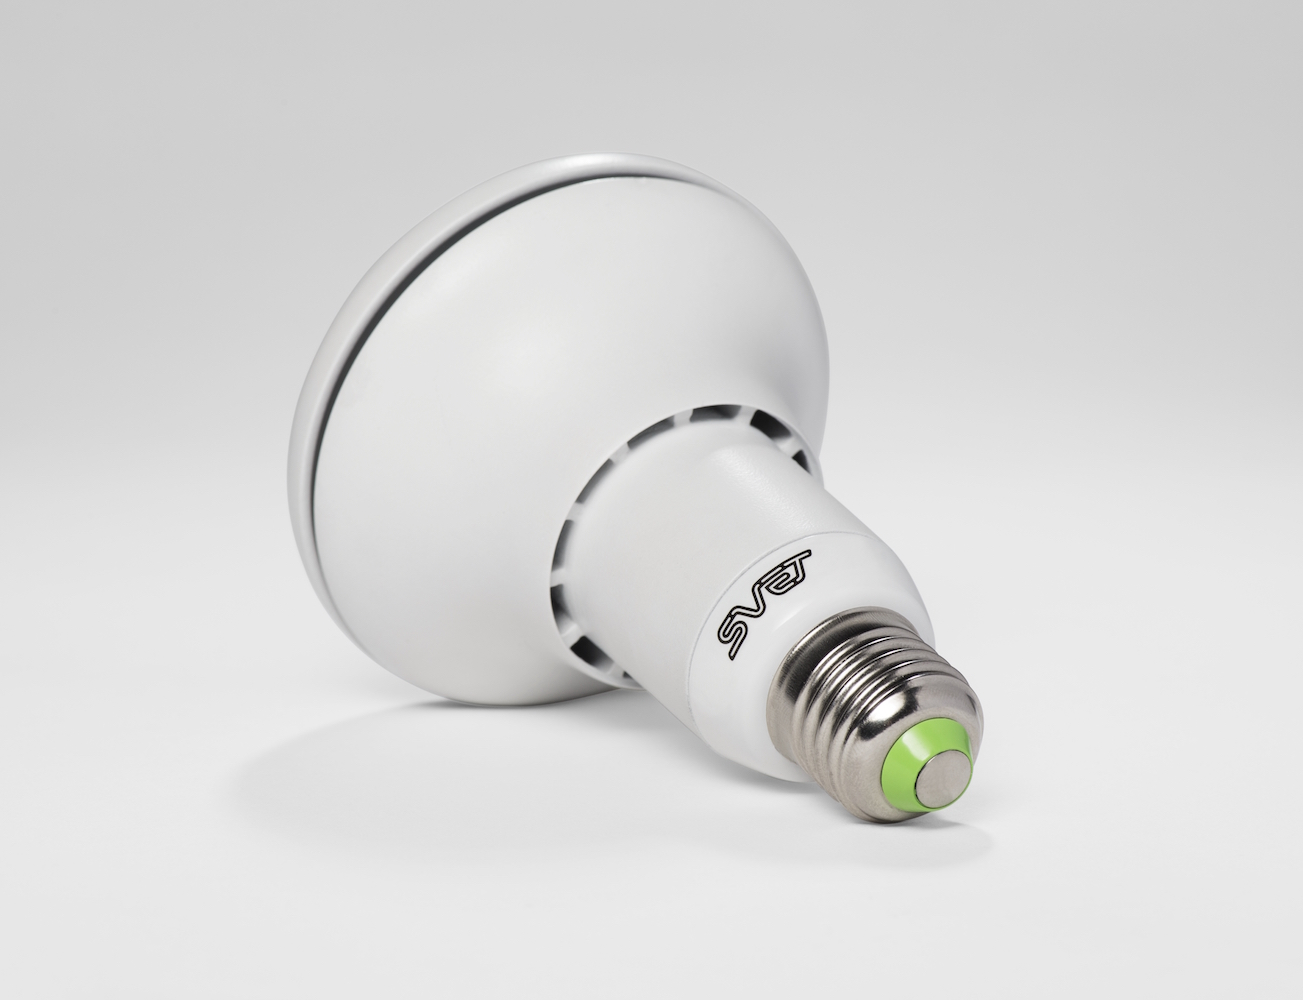 svet-the-health-friendly-light-bulb-03